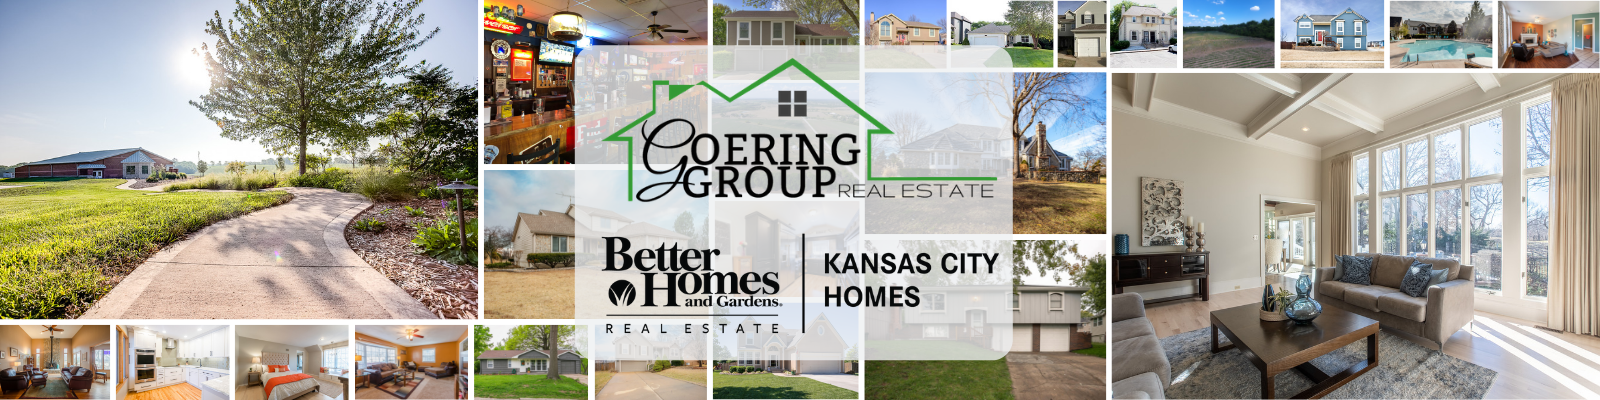 Goering Group Kansas City Listings For Sale